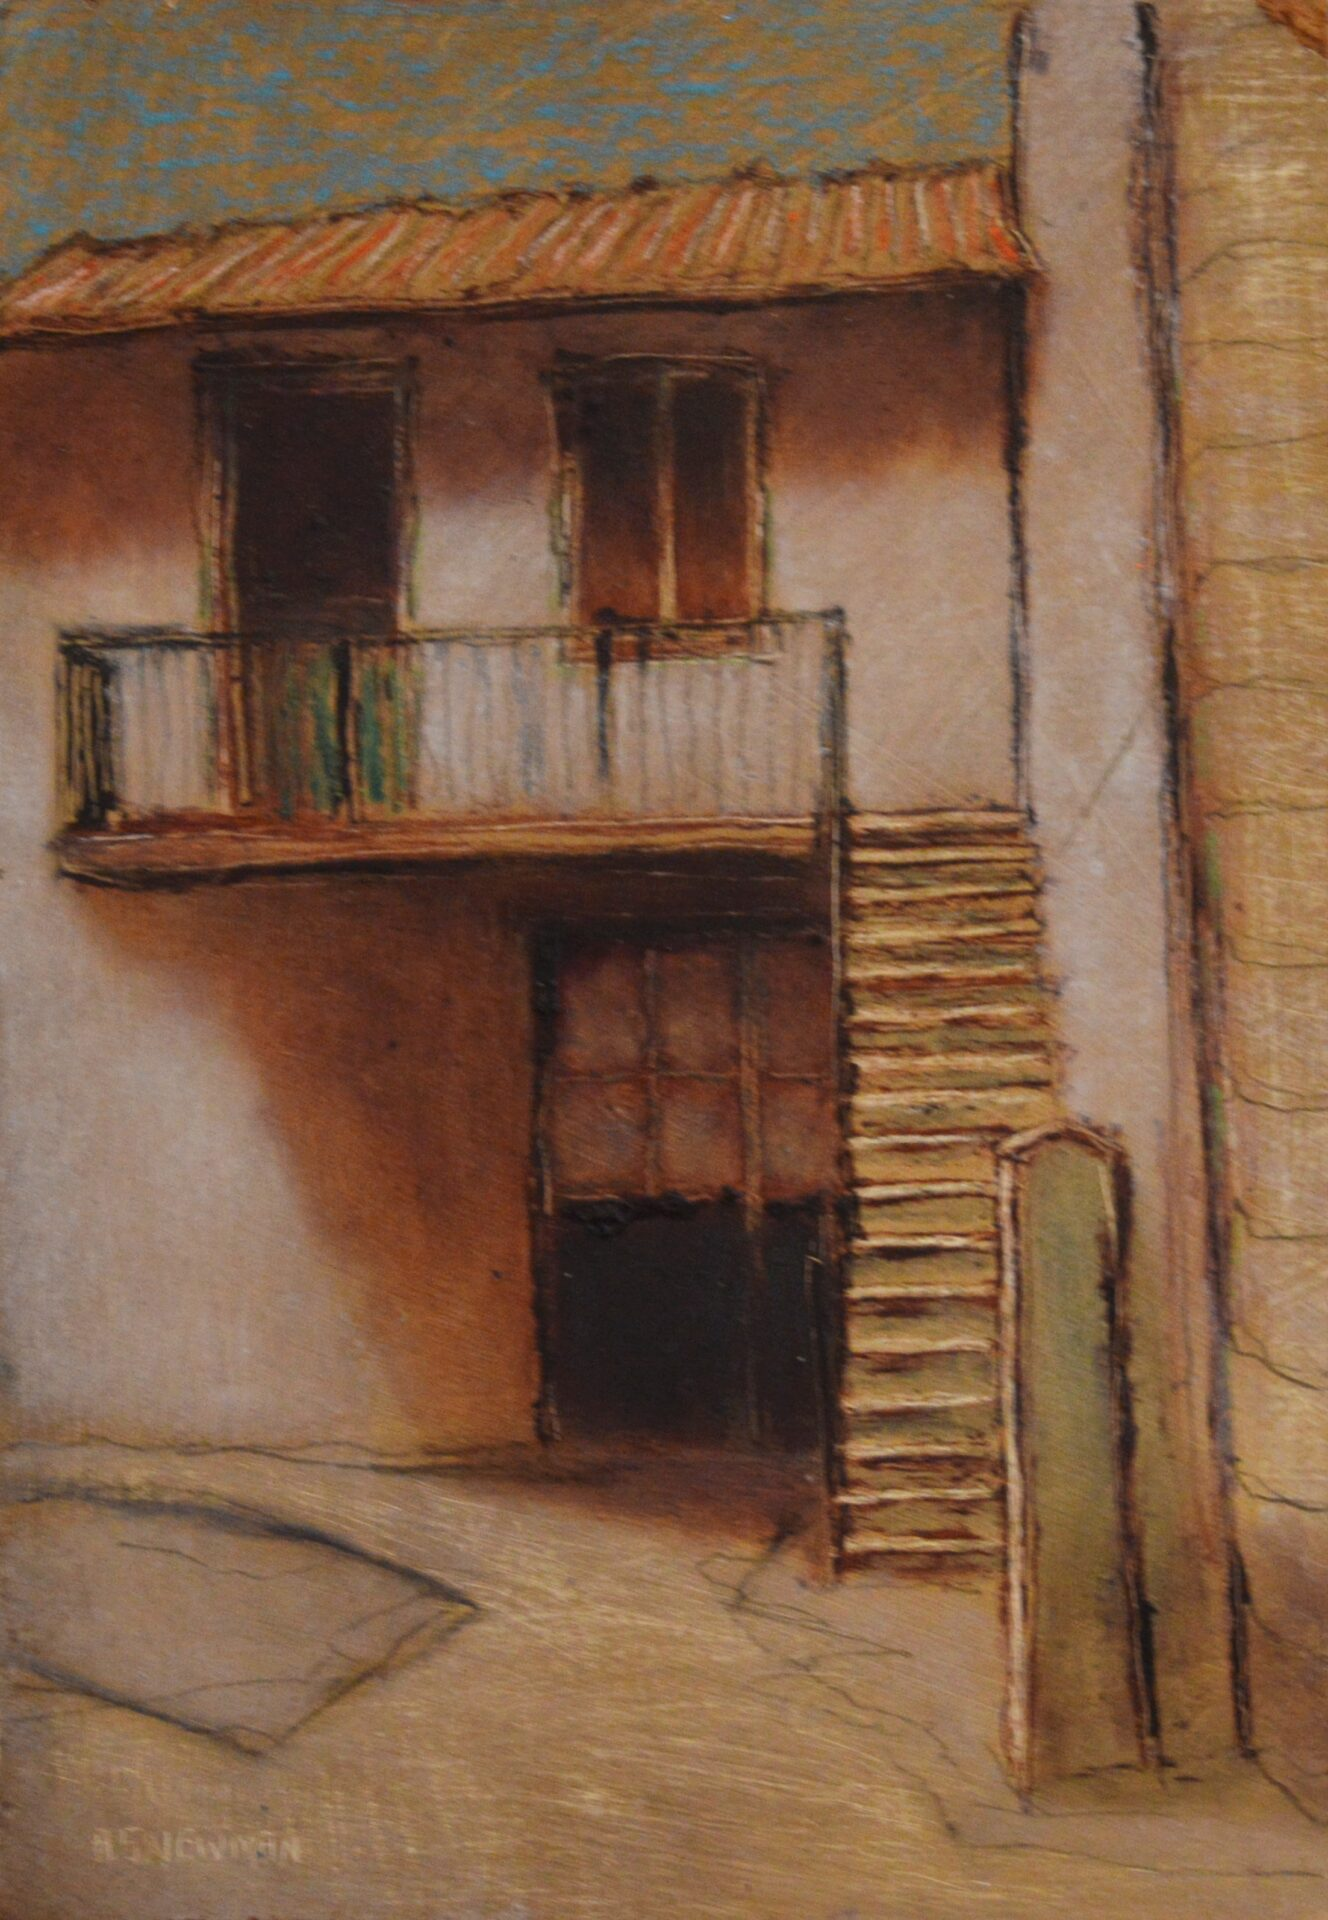 Andy Newman - House with Stairs